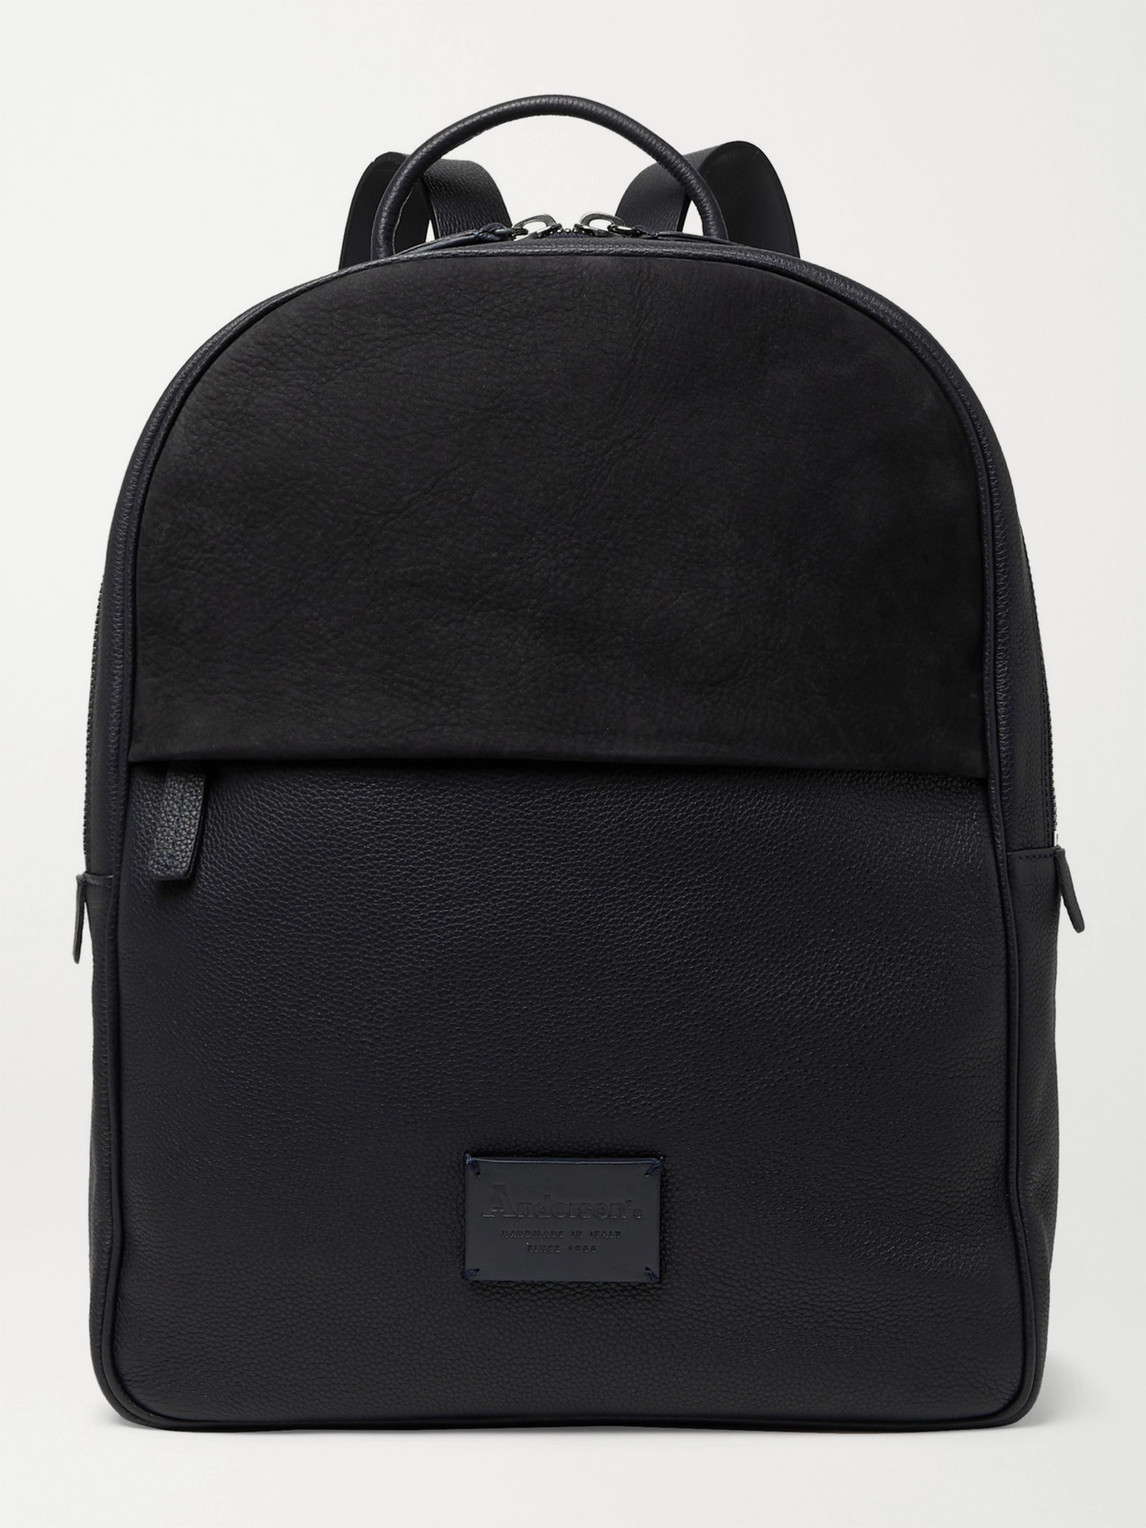 Anderson's Full-grain Leather And Suede Backpack In Black